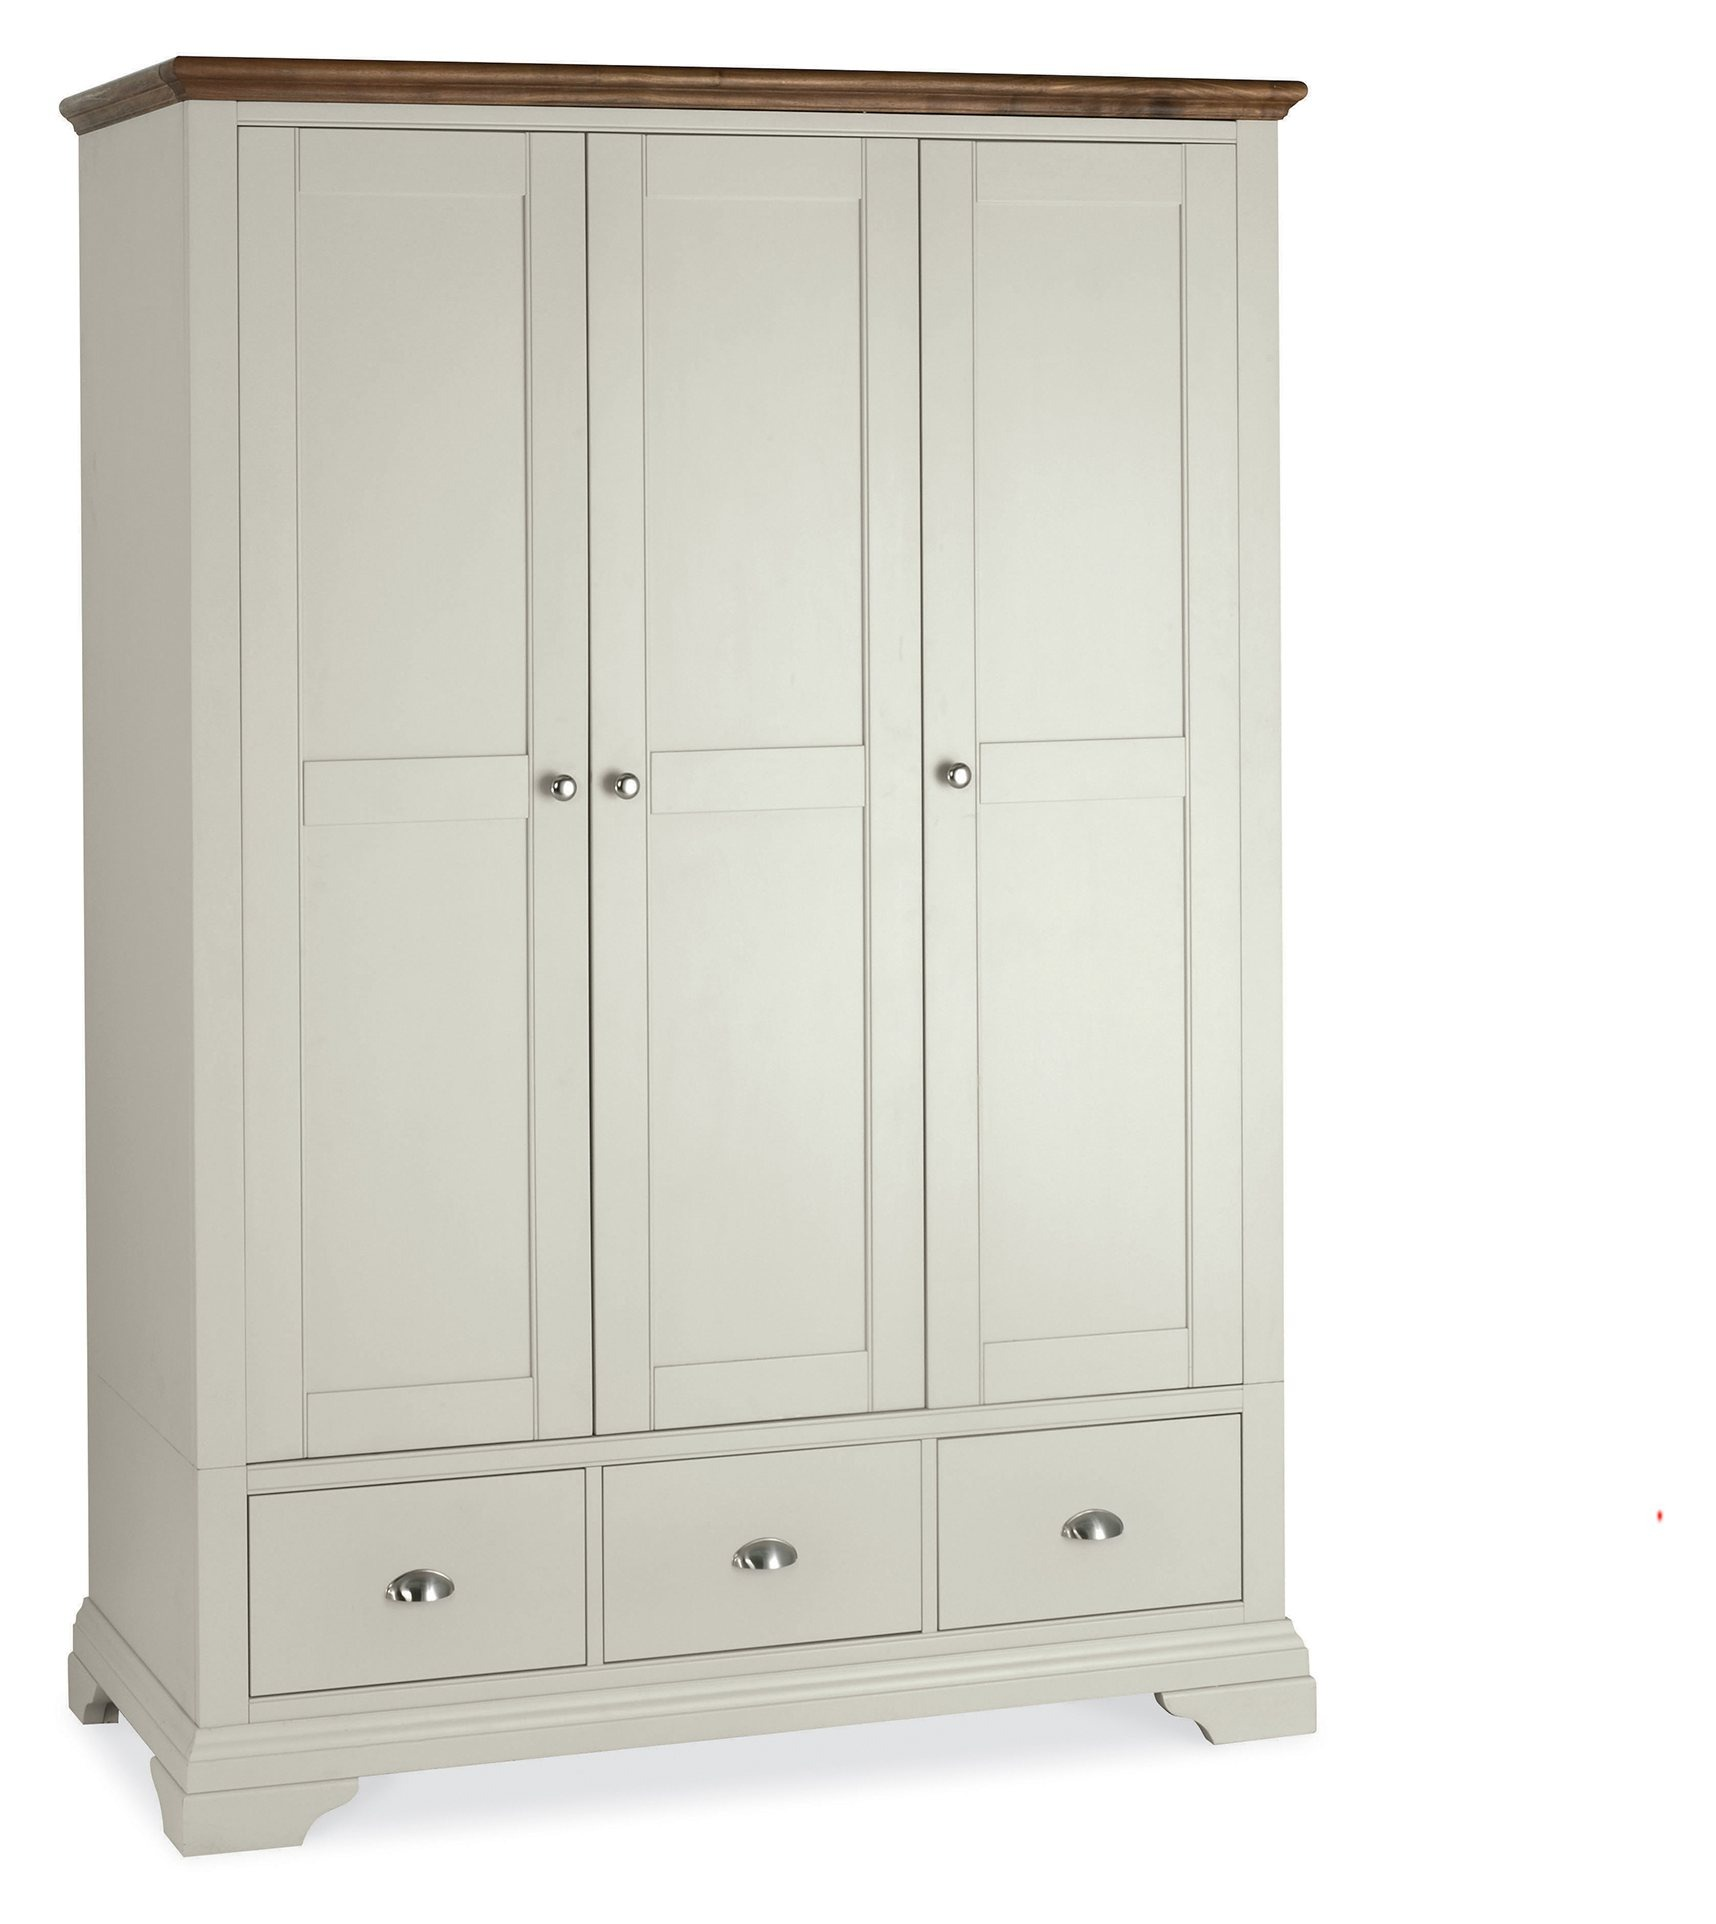 EARL GREY AND WALNUT TRIPLE WARDROBE - L138cm x D58cm x H195cm